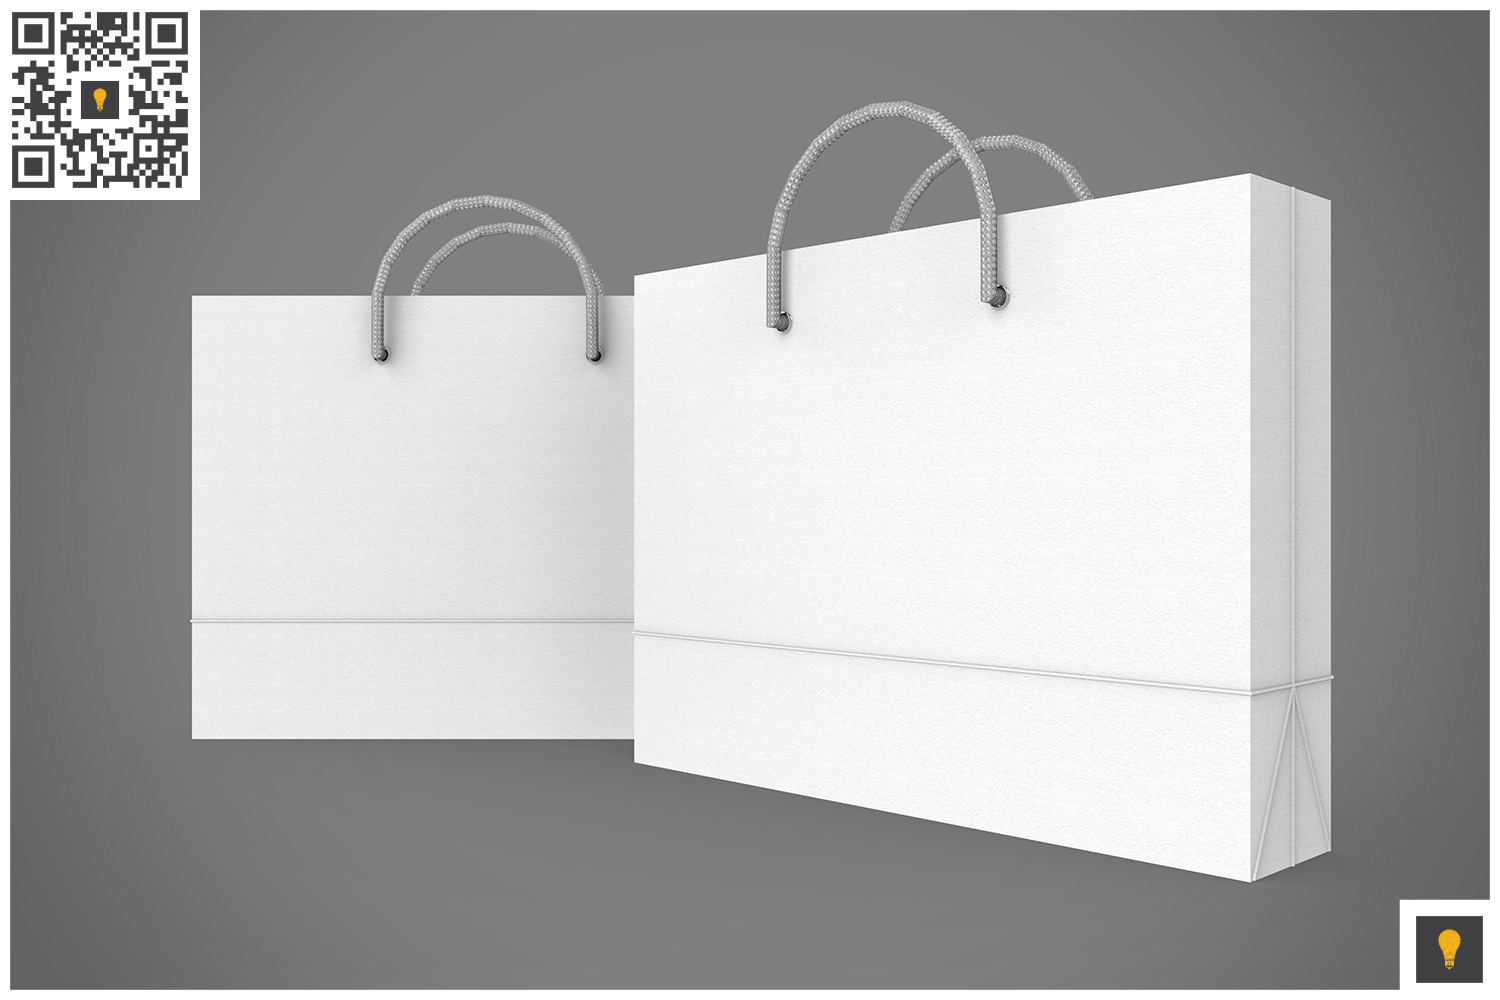 Shopping Bag 3D Render example image 19